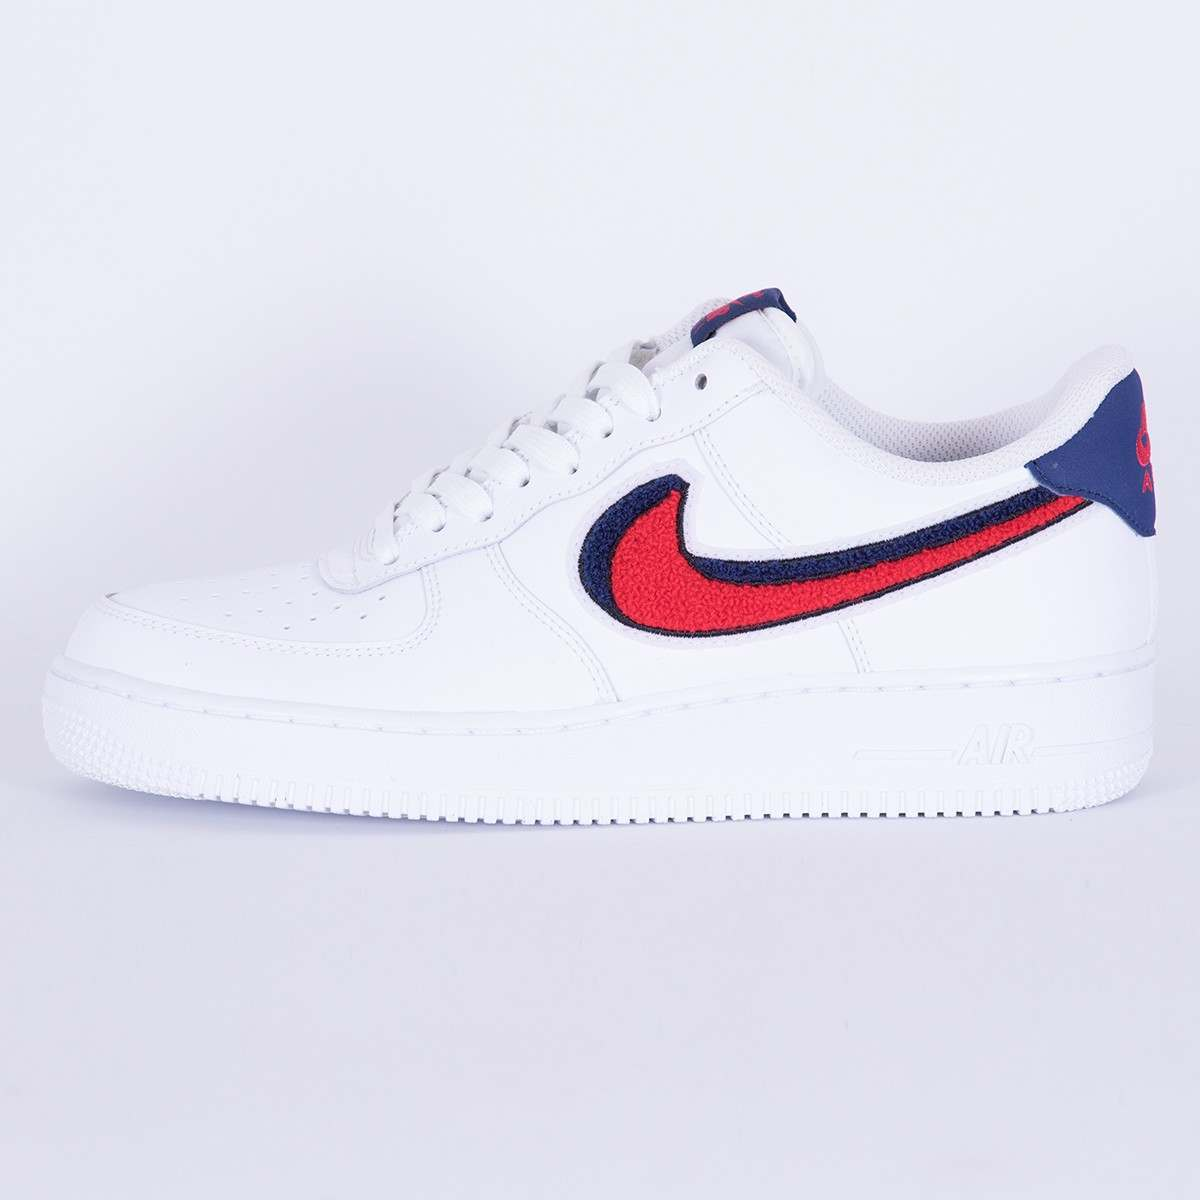 Nike Air Force 1 '07 LV8 WhiteUniversity Red